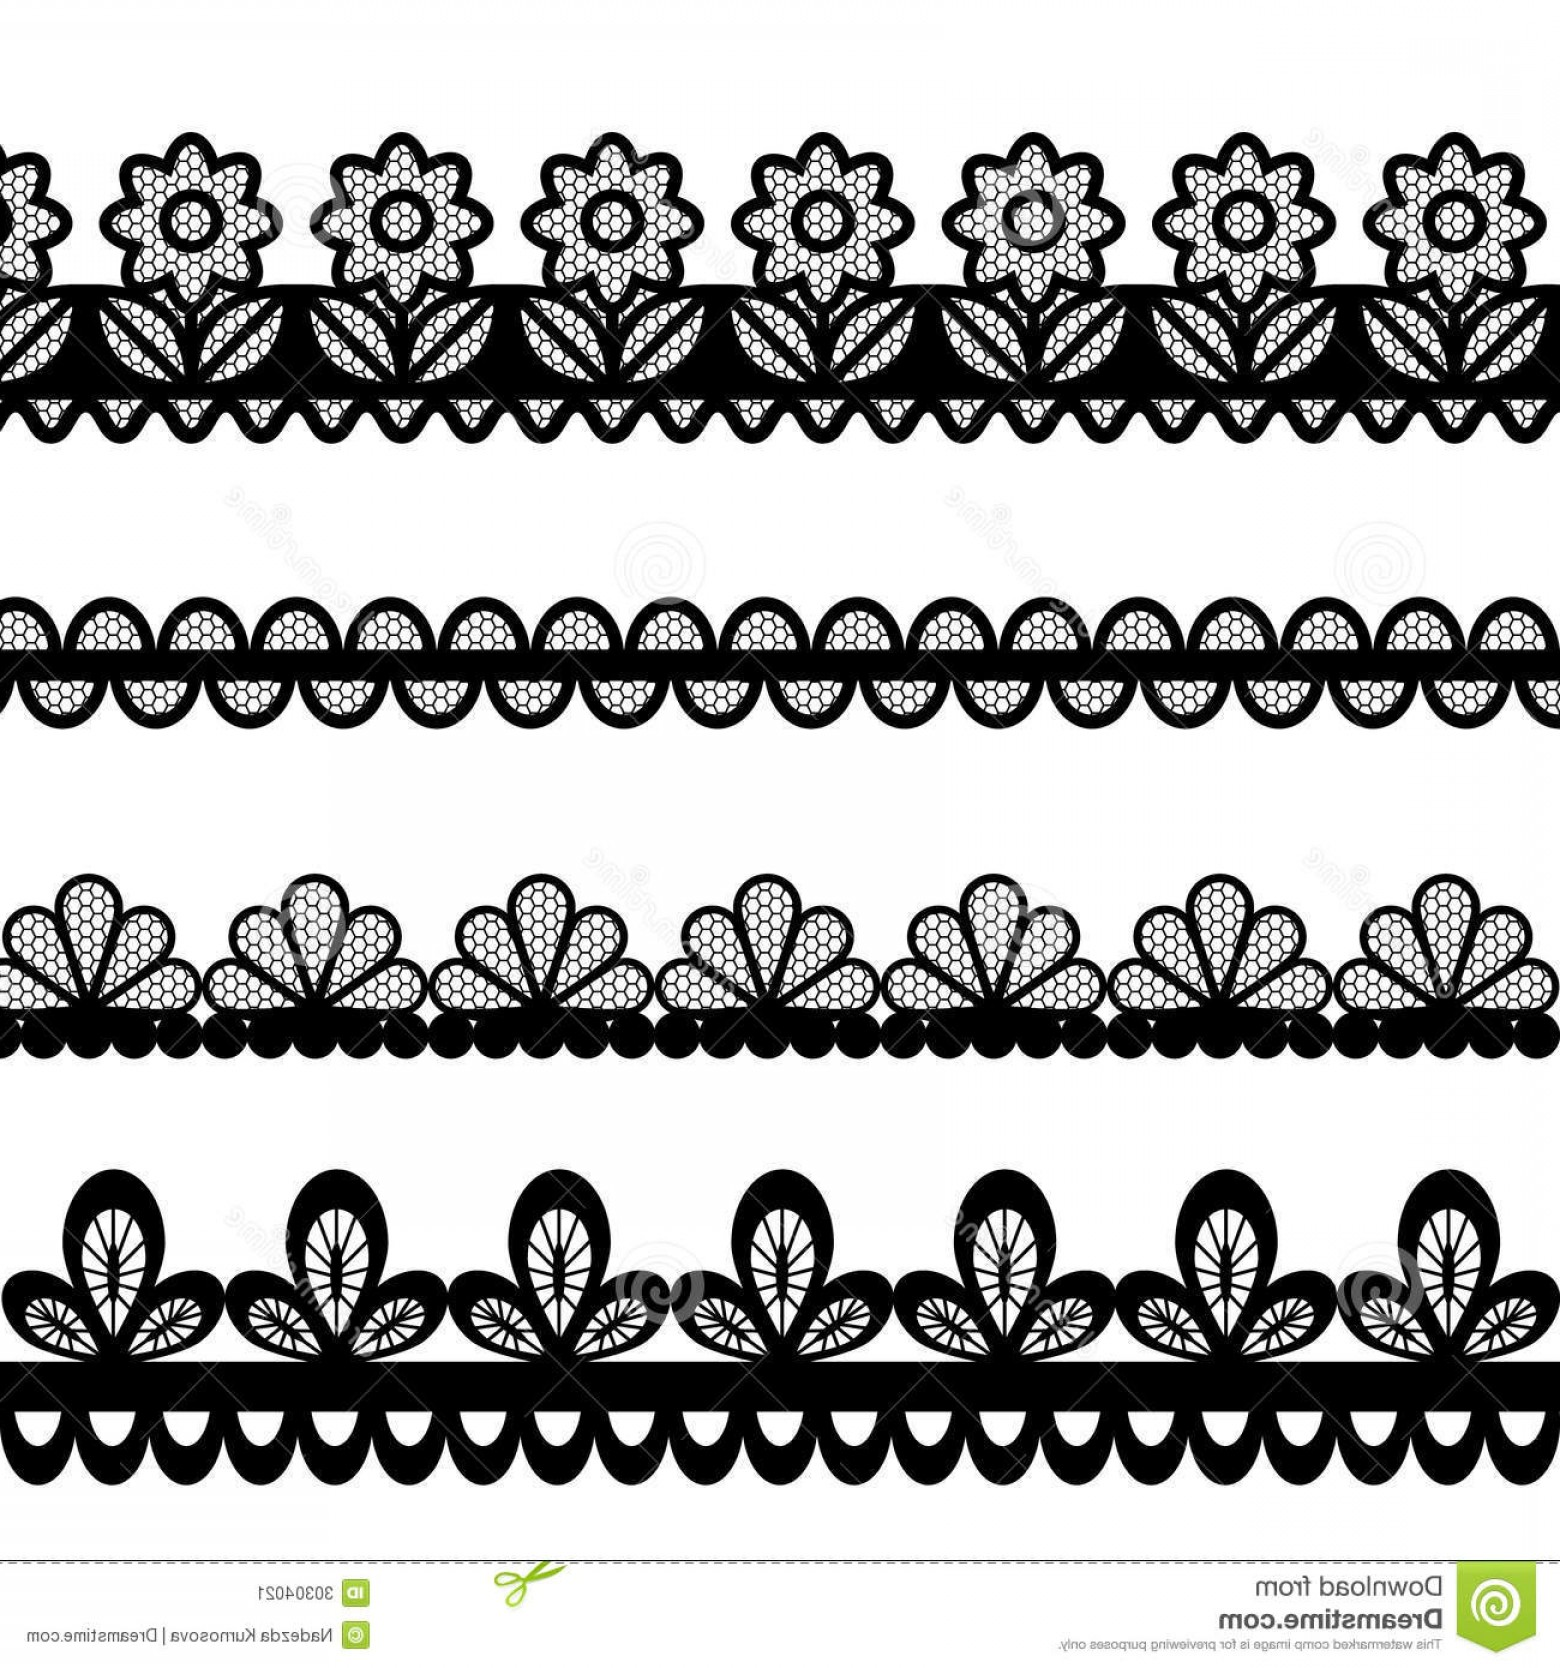 Floral Lace Trim Vector: Stock Image Set Lace Vector Borders File Eps Format Image